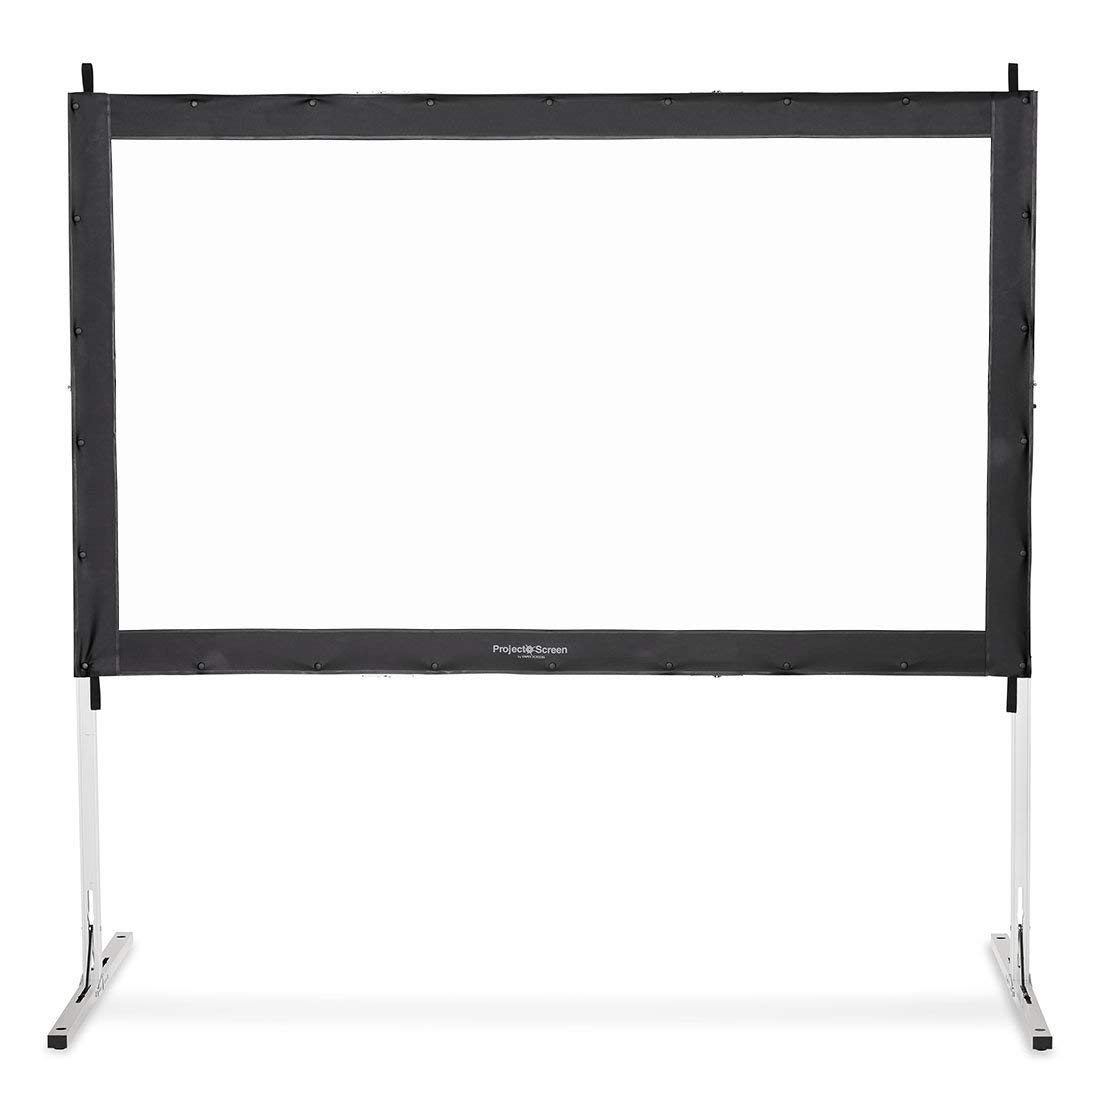 Visual Apex Projector Screen 144HD Portable Indoor/Outdoor Movie Theater Fast-Folding Projector Screen with Stand Legs and Carry Bag HD4K 16:9 Format (Renewed)